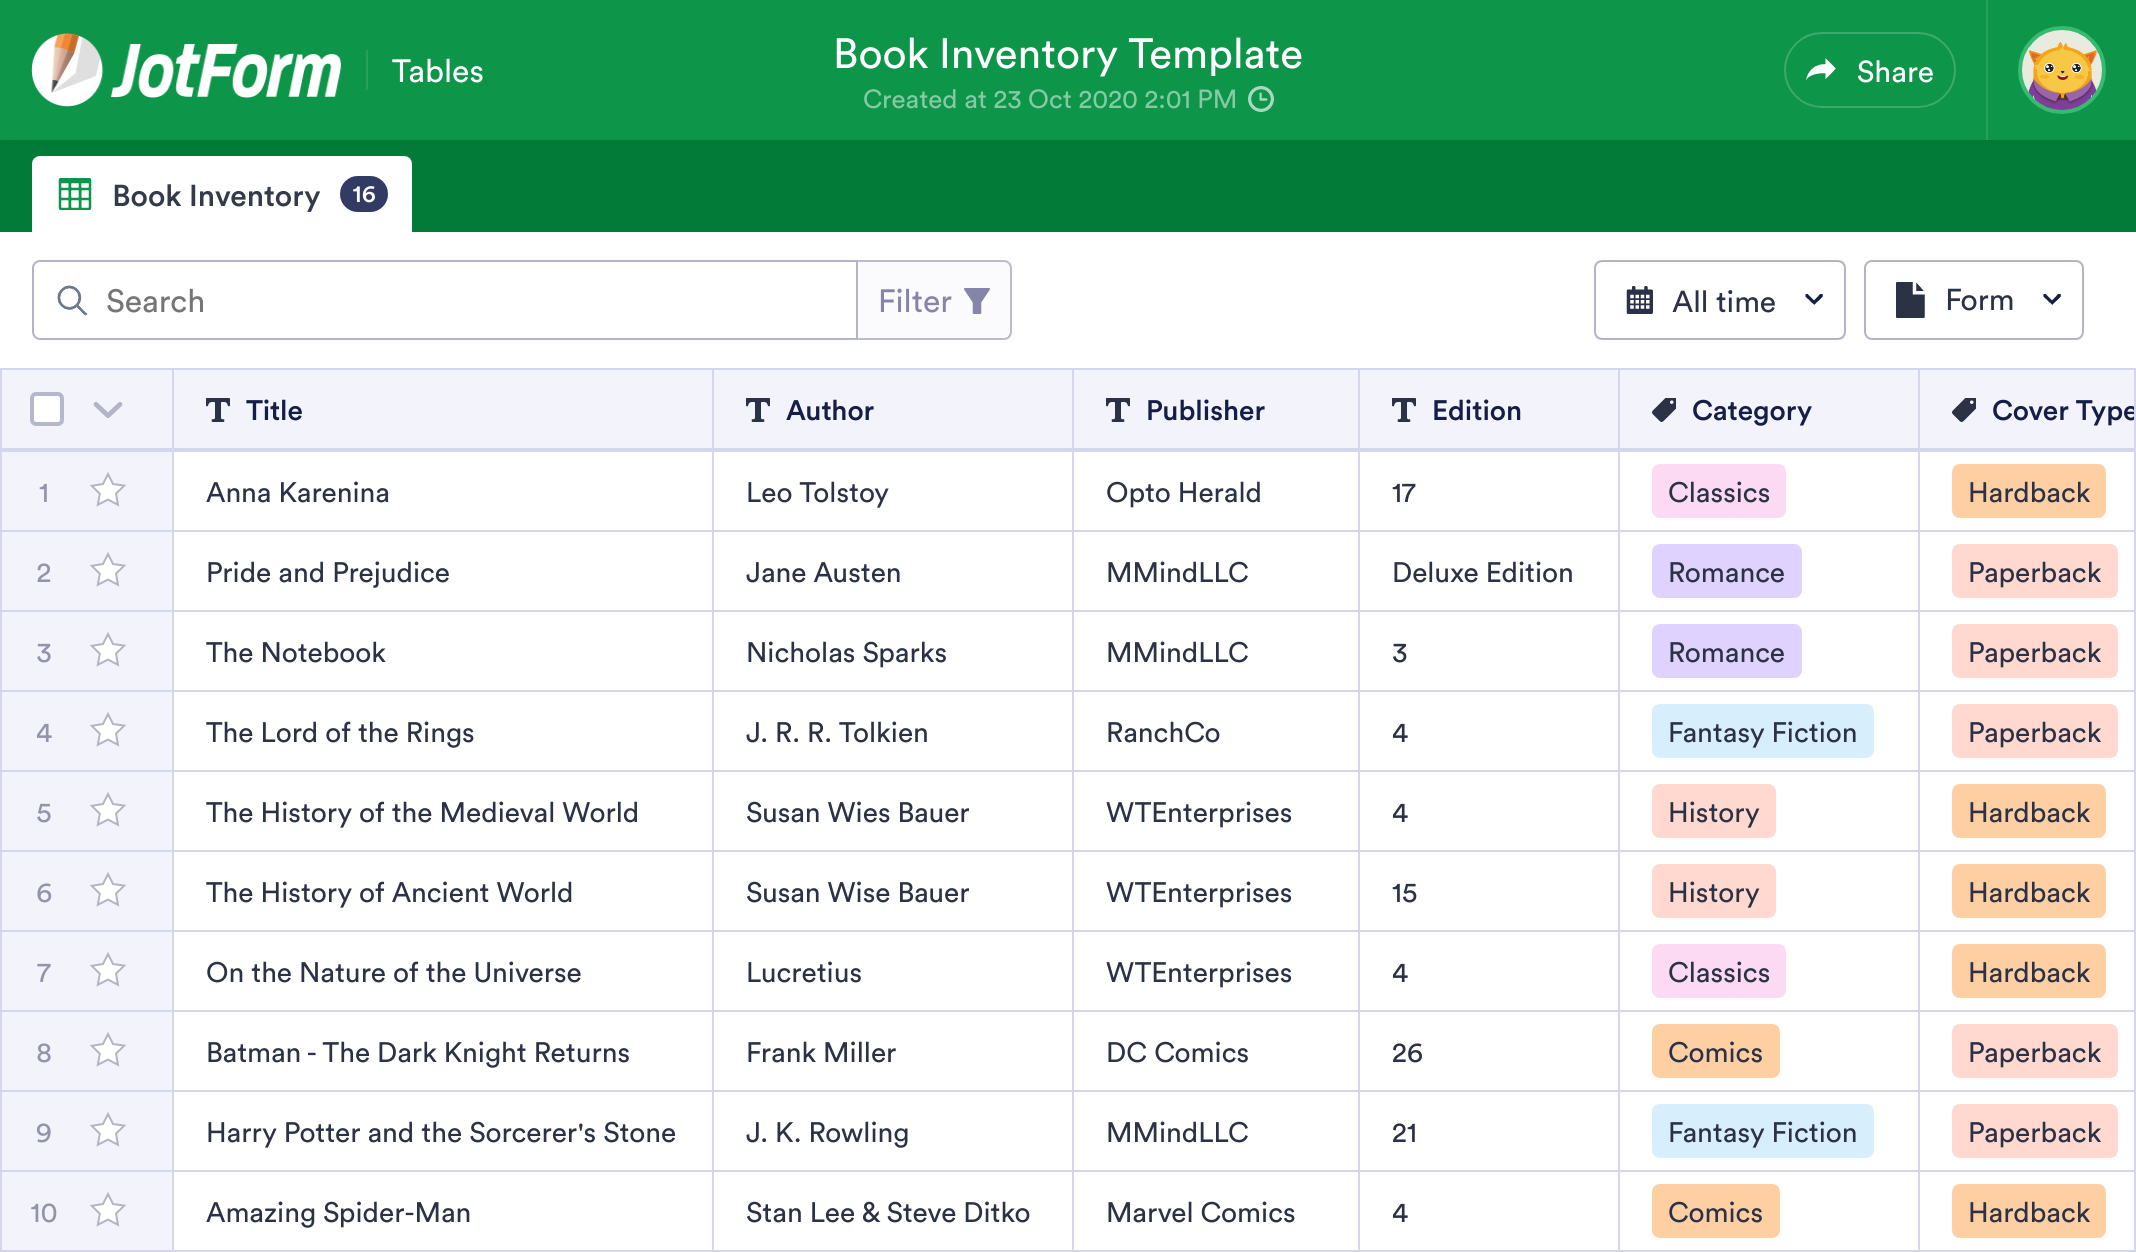 Book Inventory Template Jotform Tables